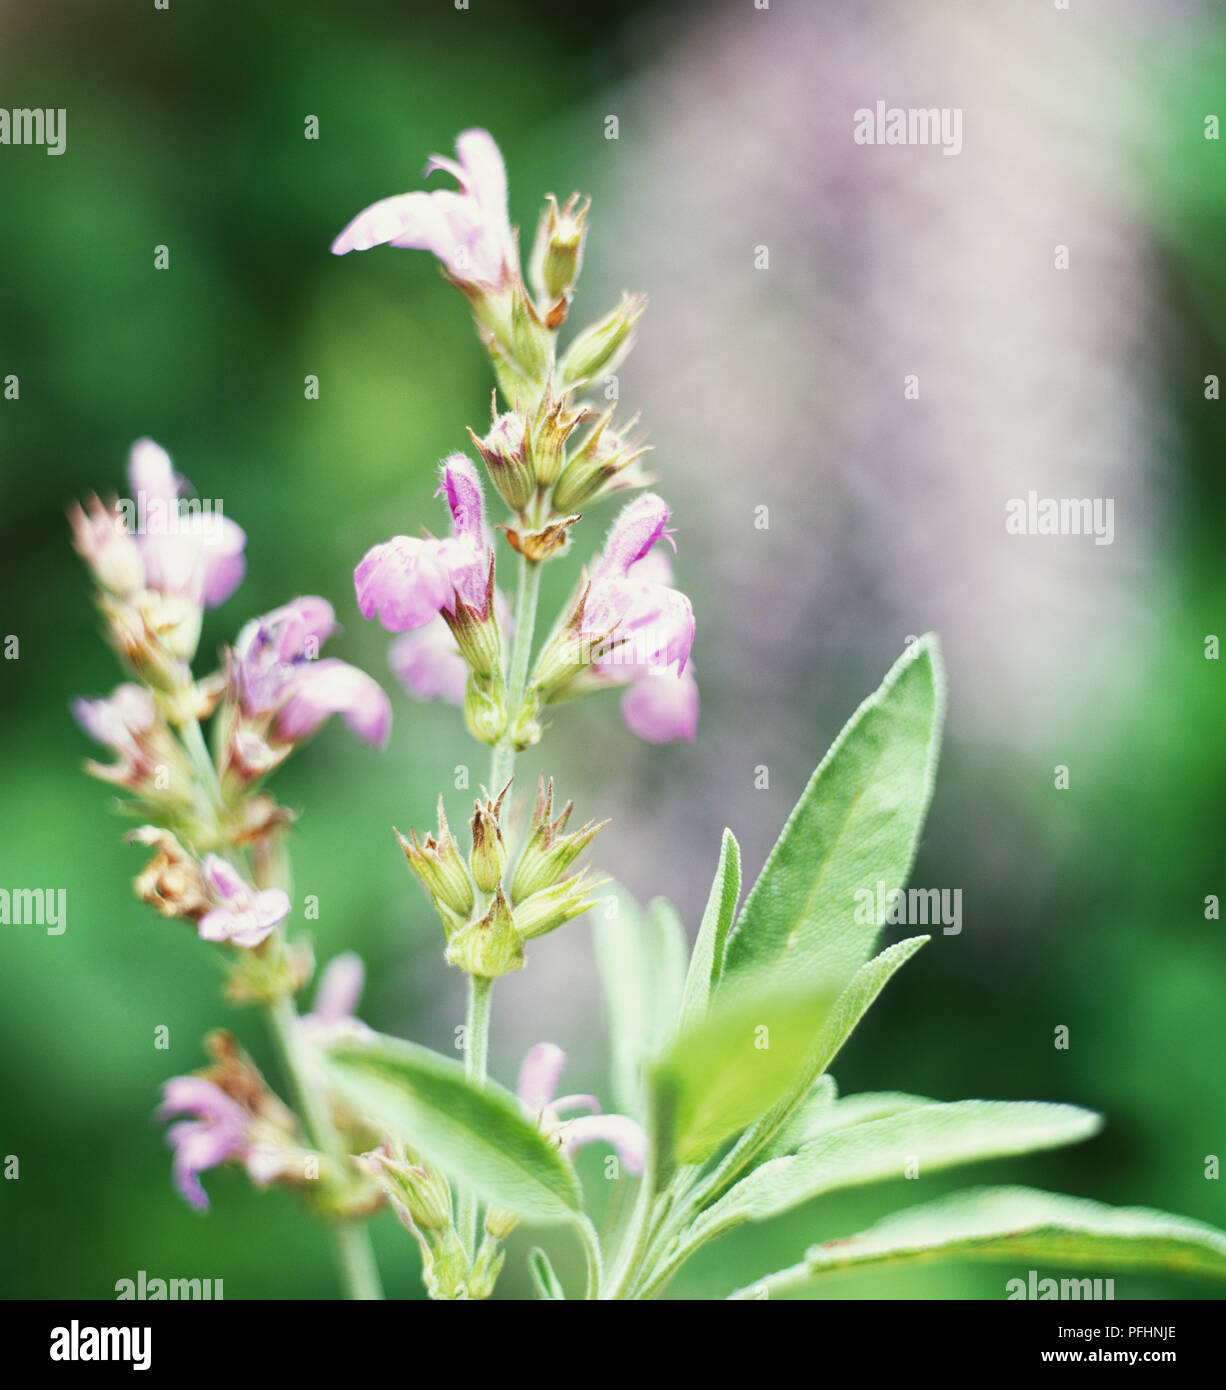 Narrow Leaved Sage Spanish Sage Salvia Lavandulifolia Flowers Buds And Small Narrow Oval Textured Green Leaves Close Up Stock Photo Alamy,Easy Meatball Recipe For Spaghetti